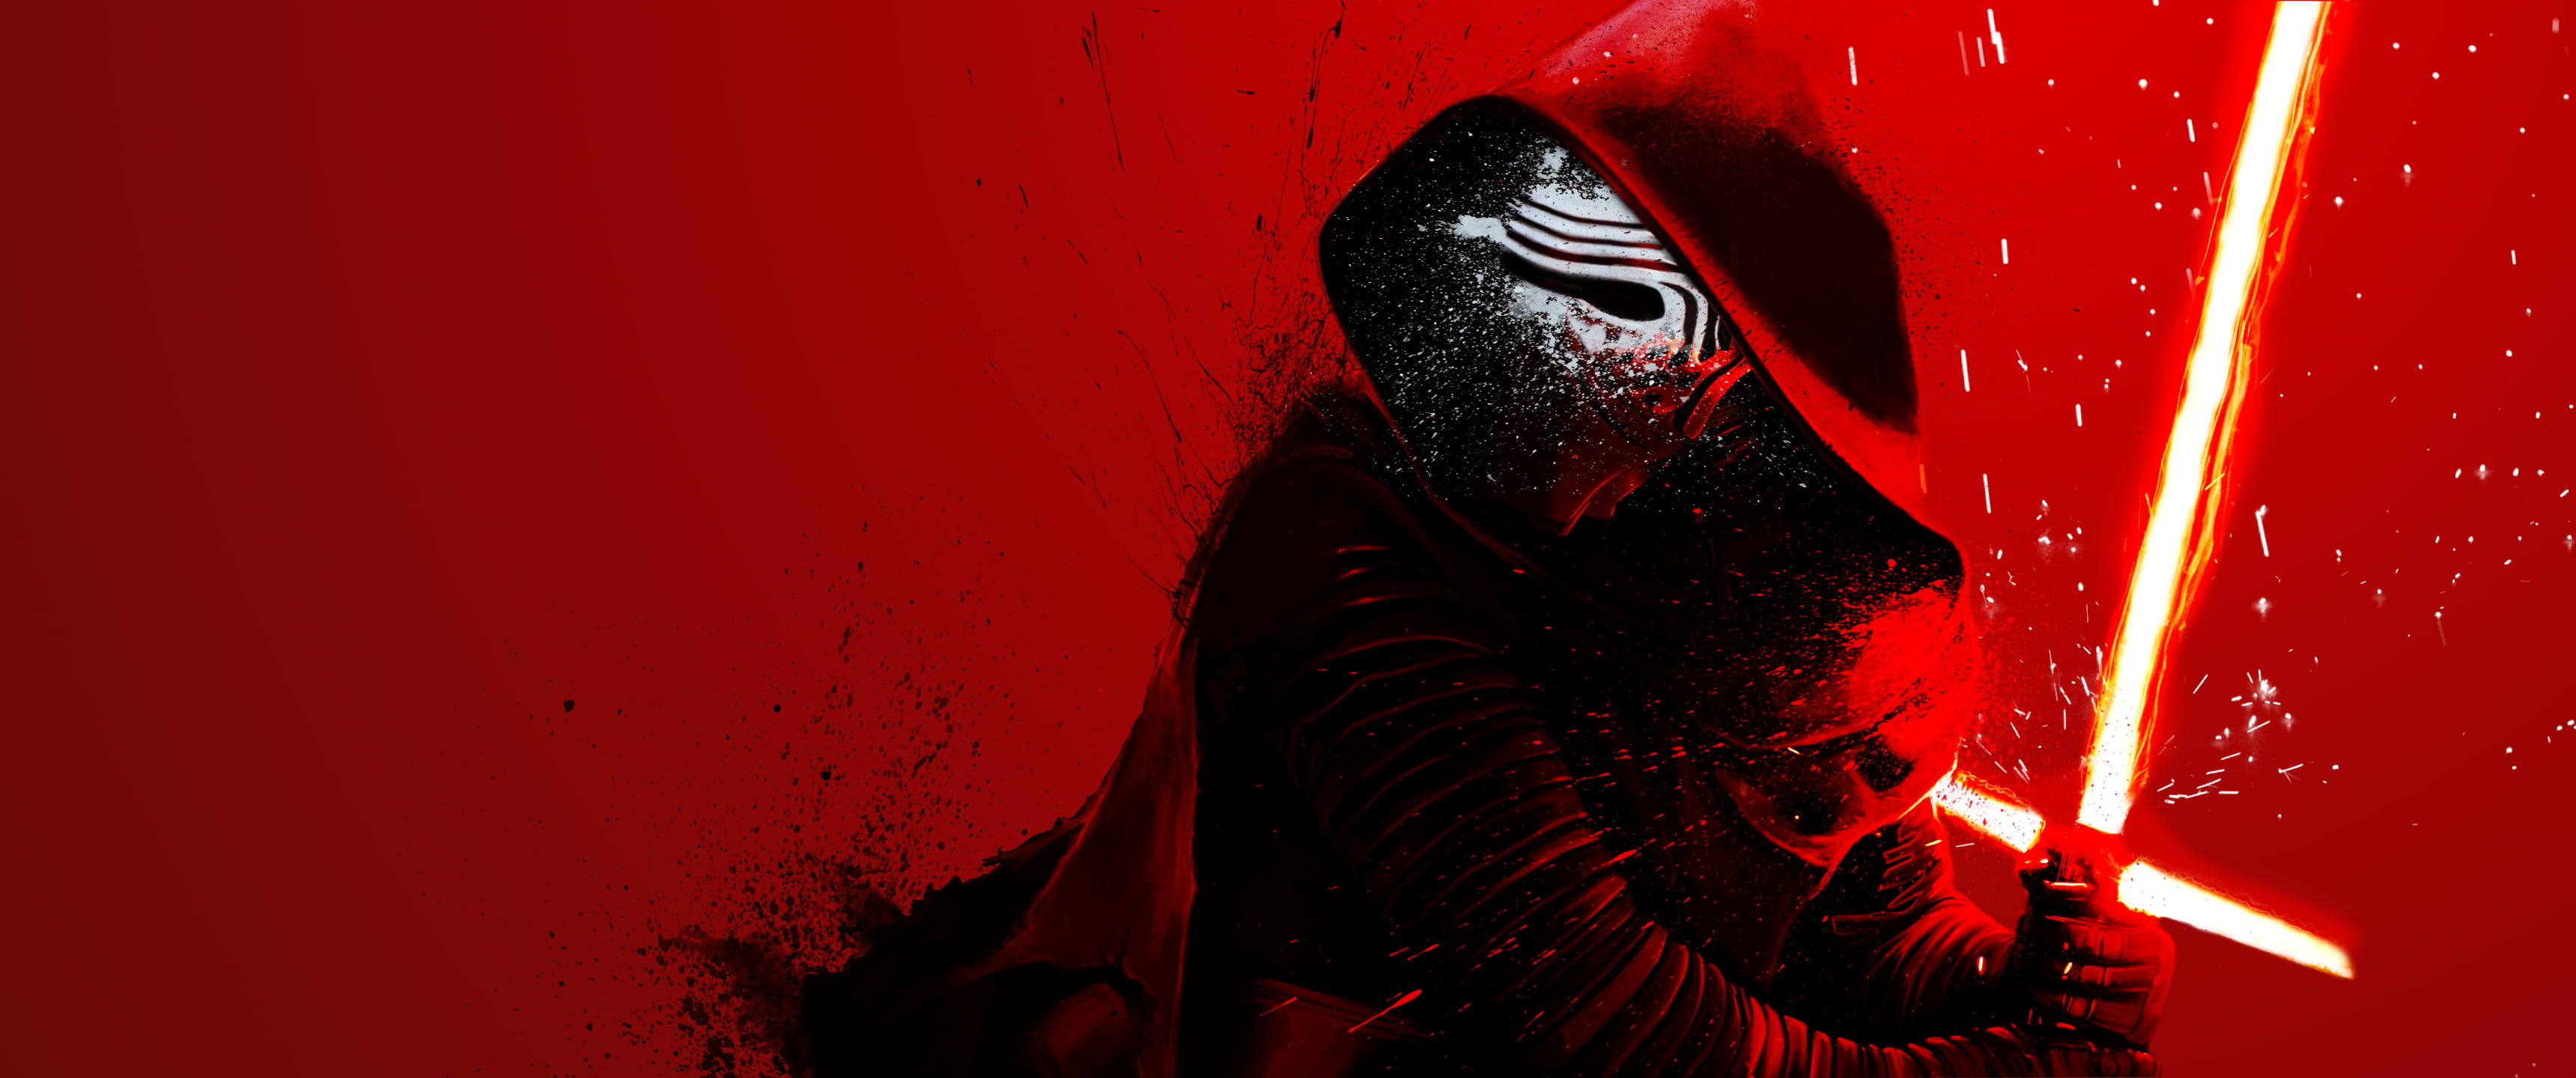 kylo ren star wars the force awakens red background lightsaber wallpaper dfc5826cfe465c1b65dc38f201f104d4